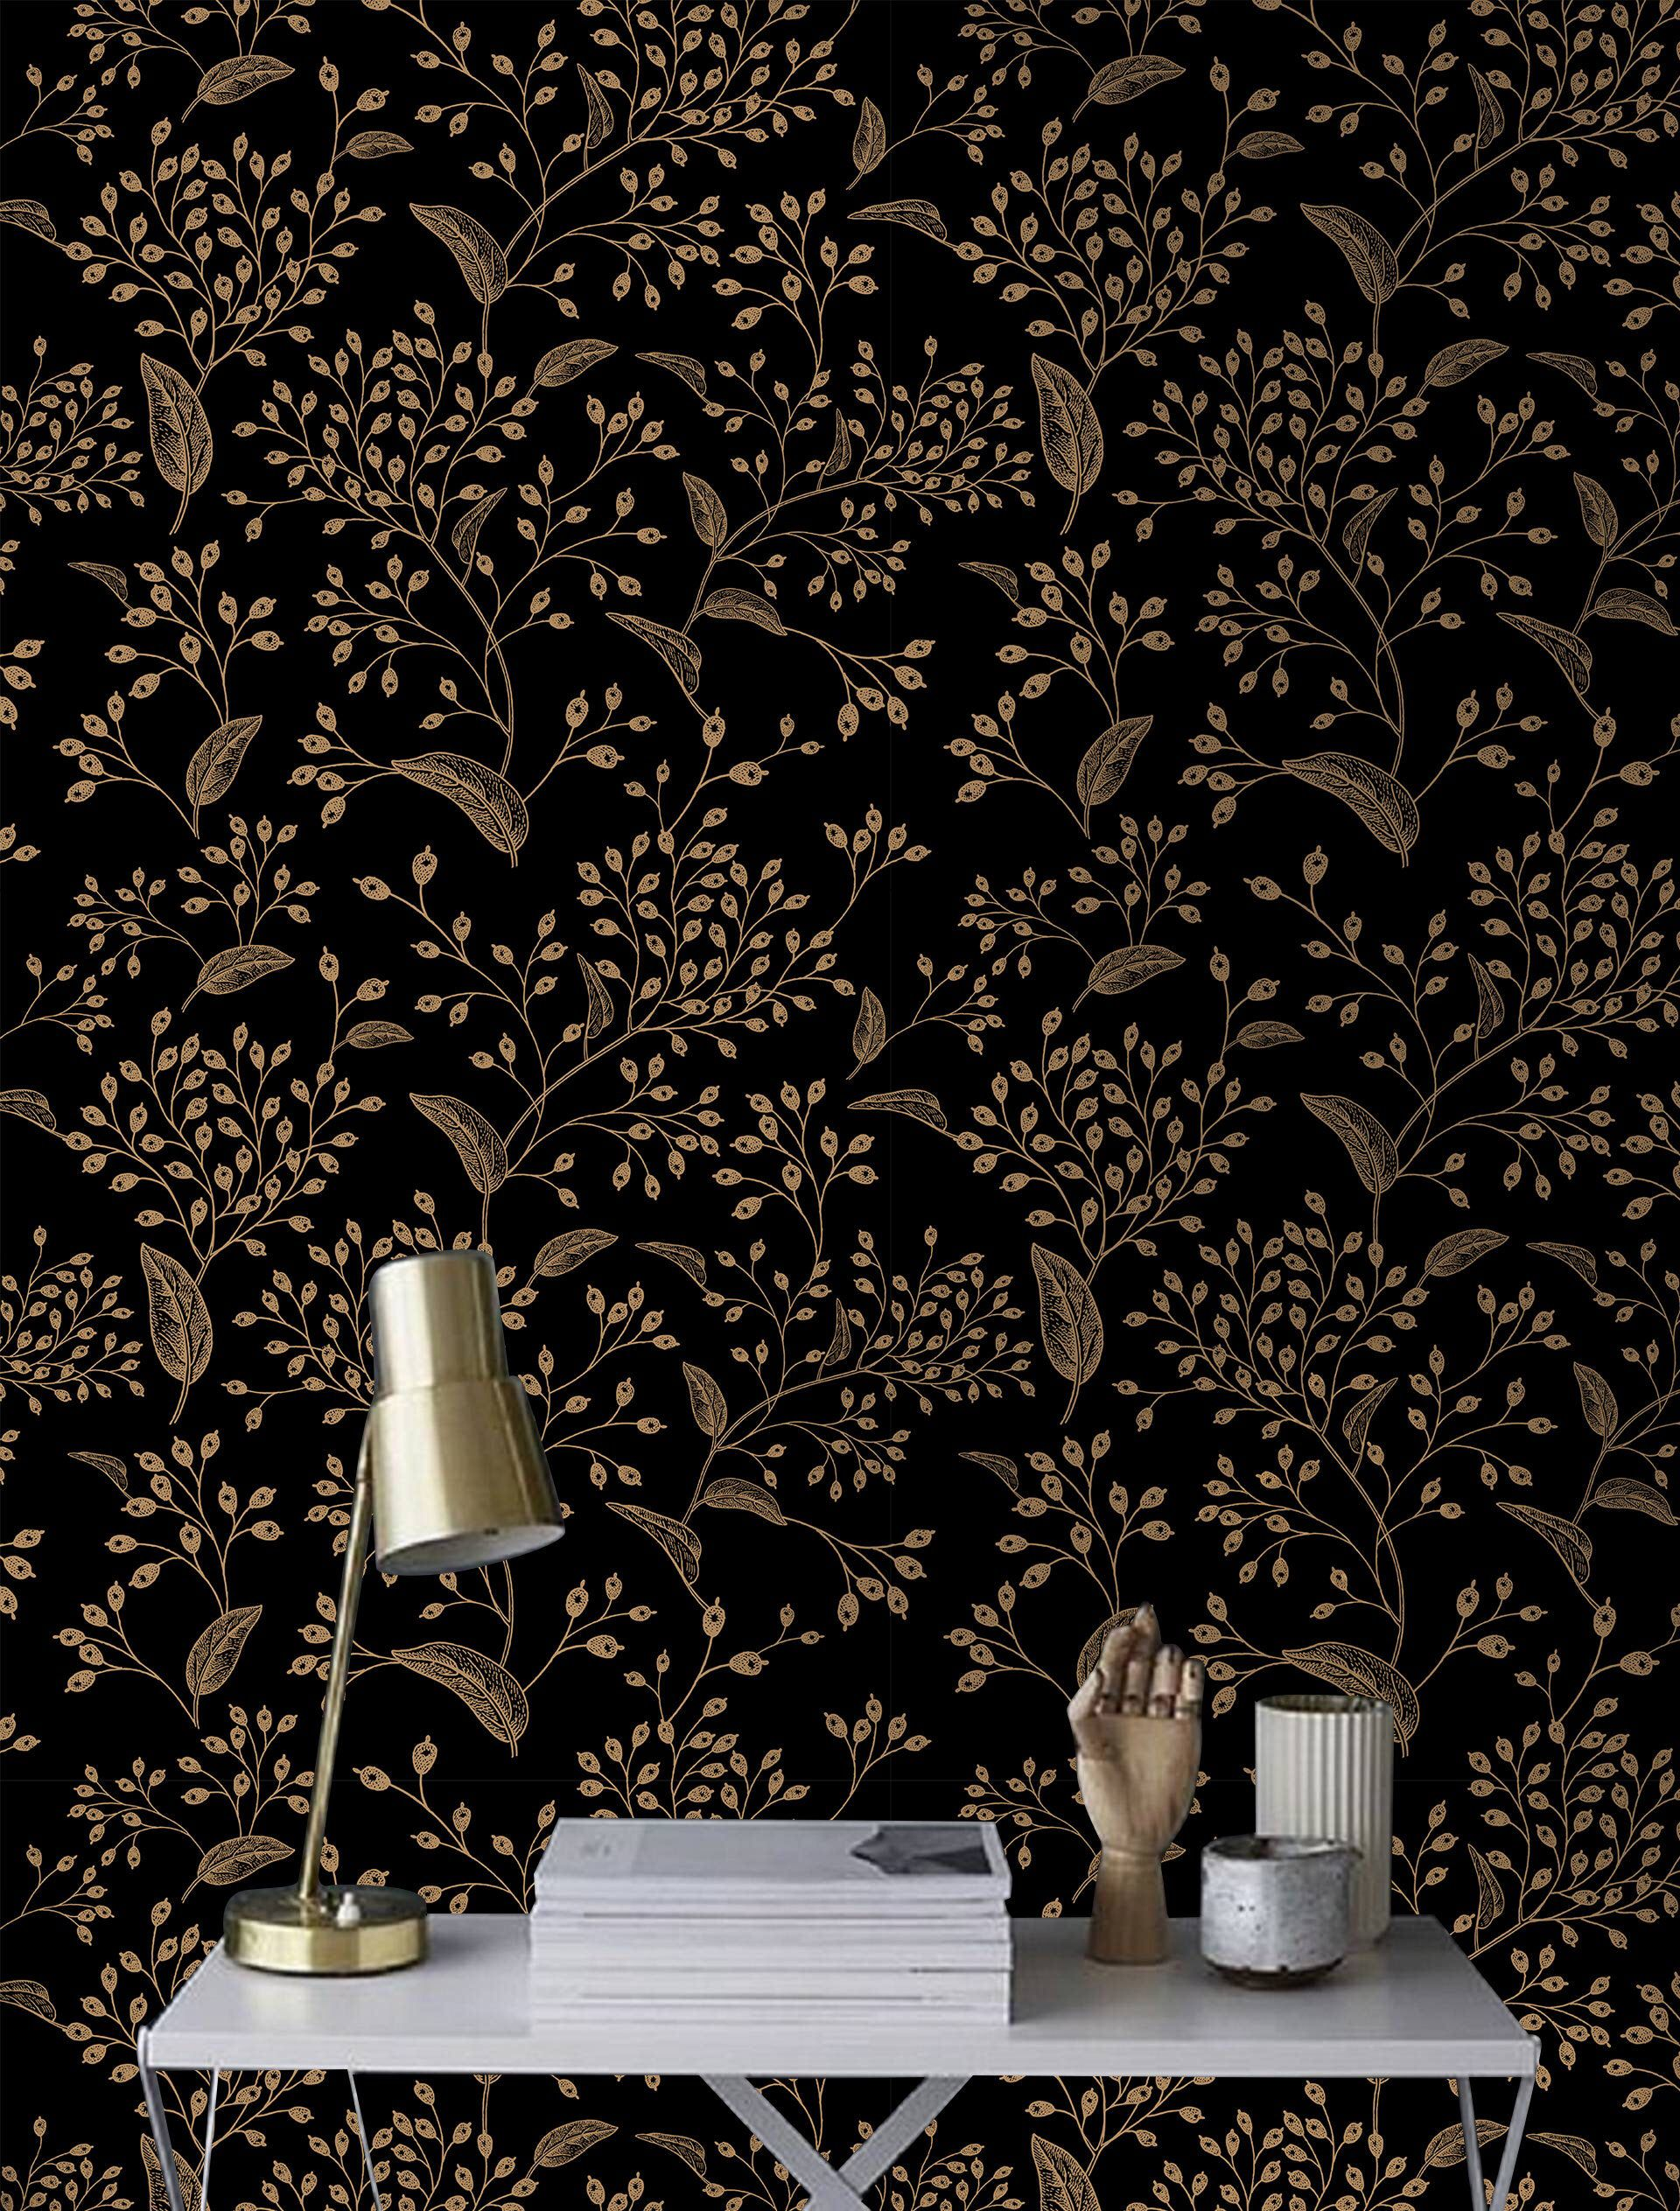 Gold Rowan Removable Wallpaper Gold And Black 43 Etsy Removable Wallpaper How To Install Wallpaper Traditional Wallpaper